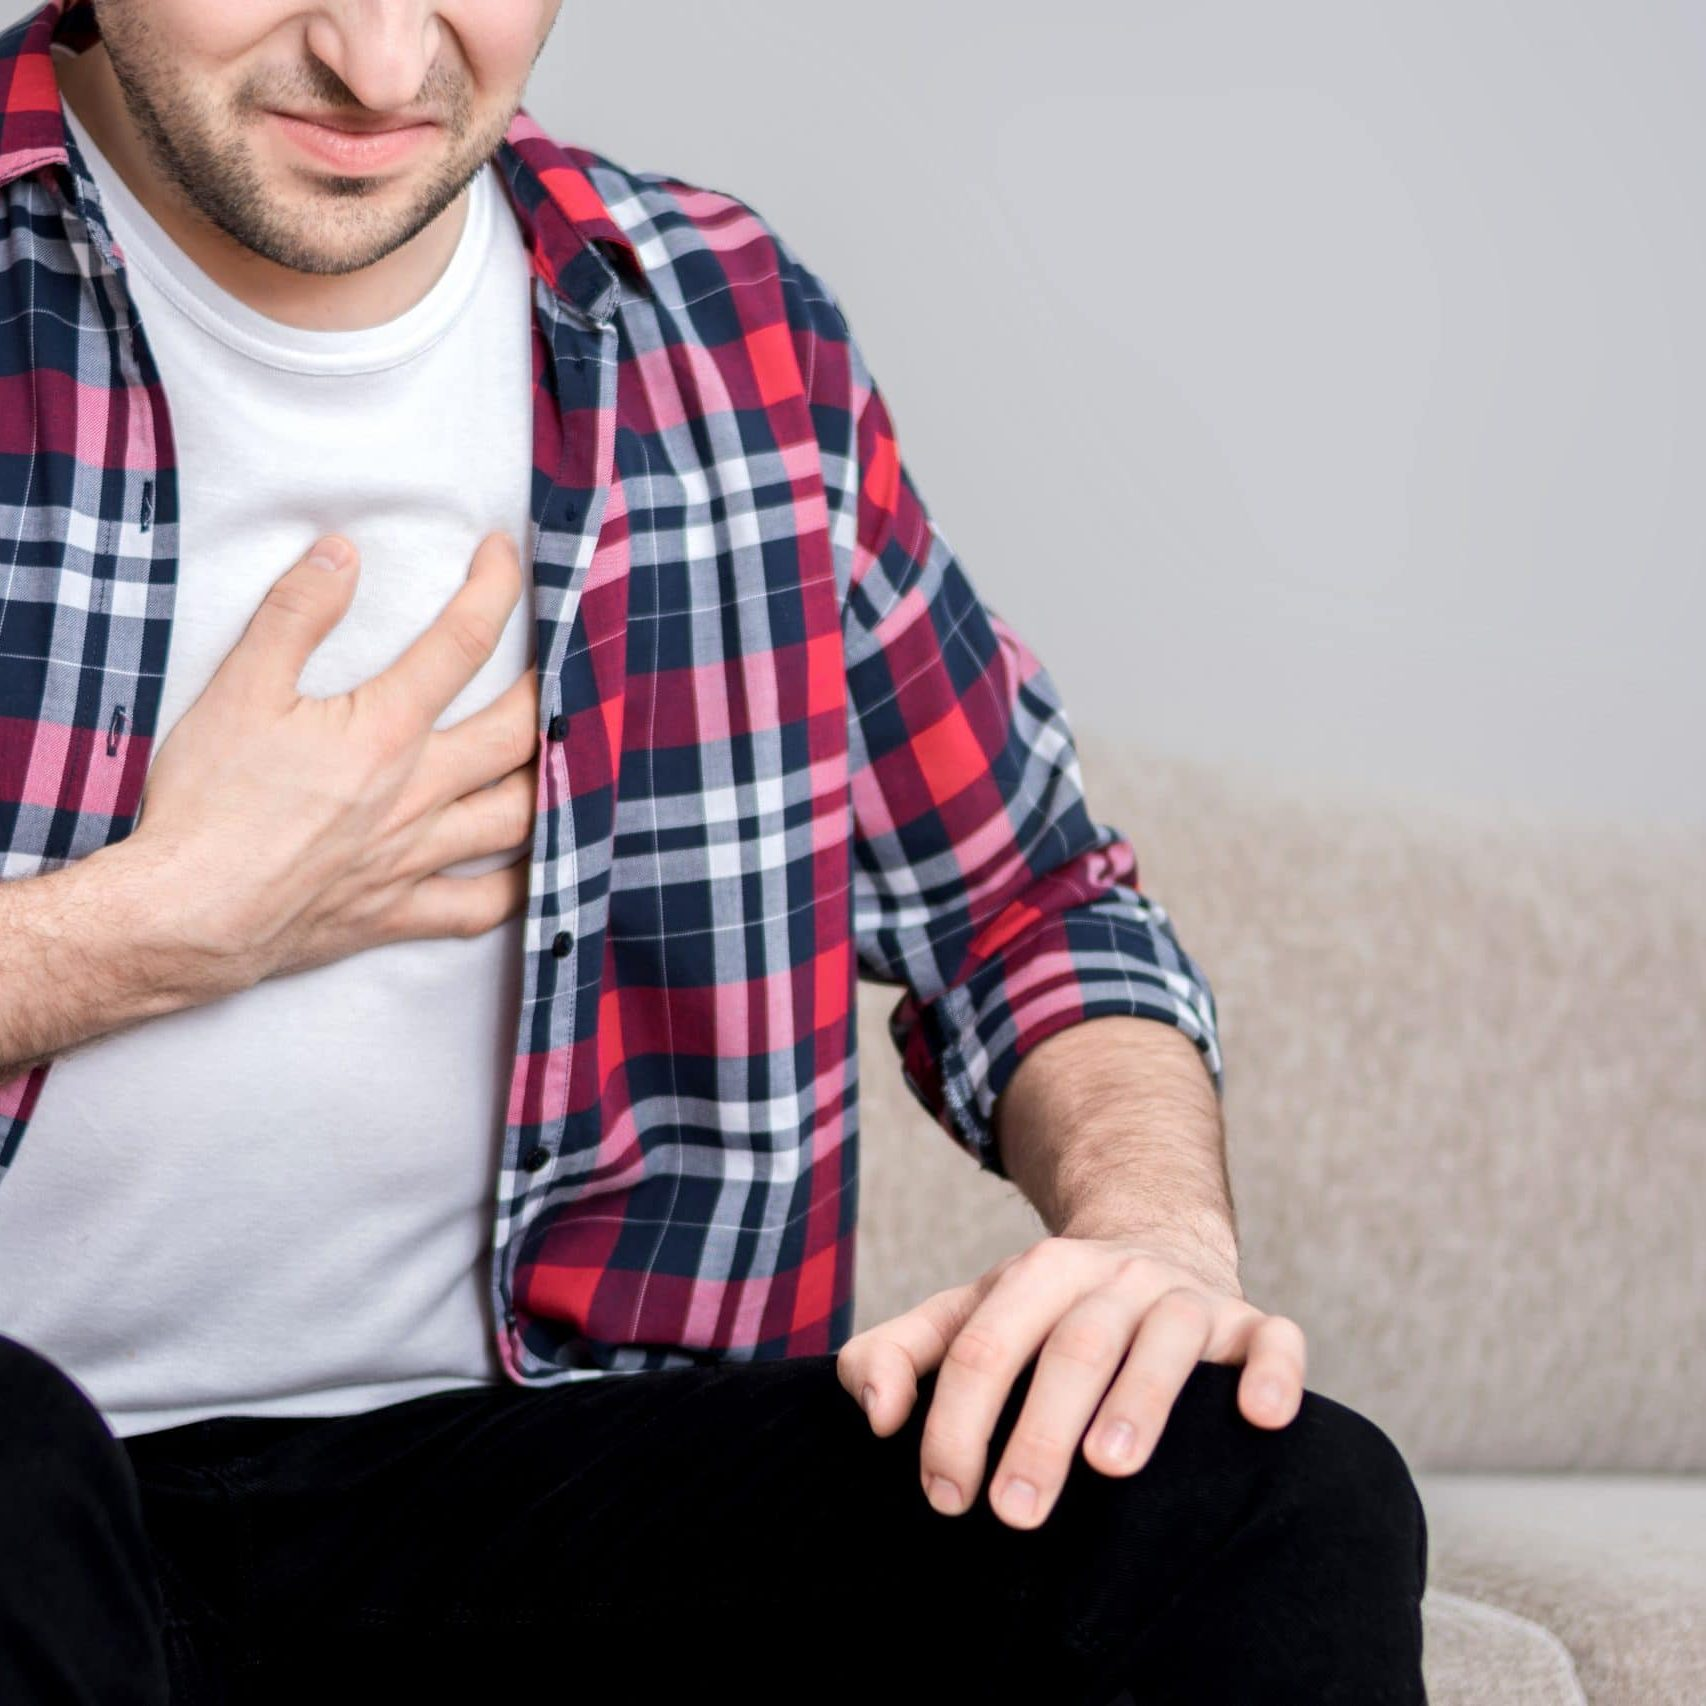 Man with chest pain suffering from heart attack